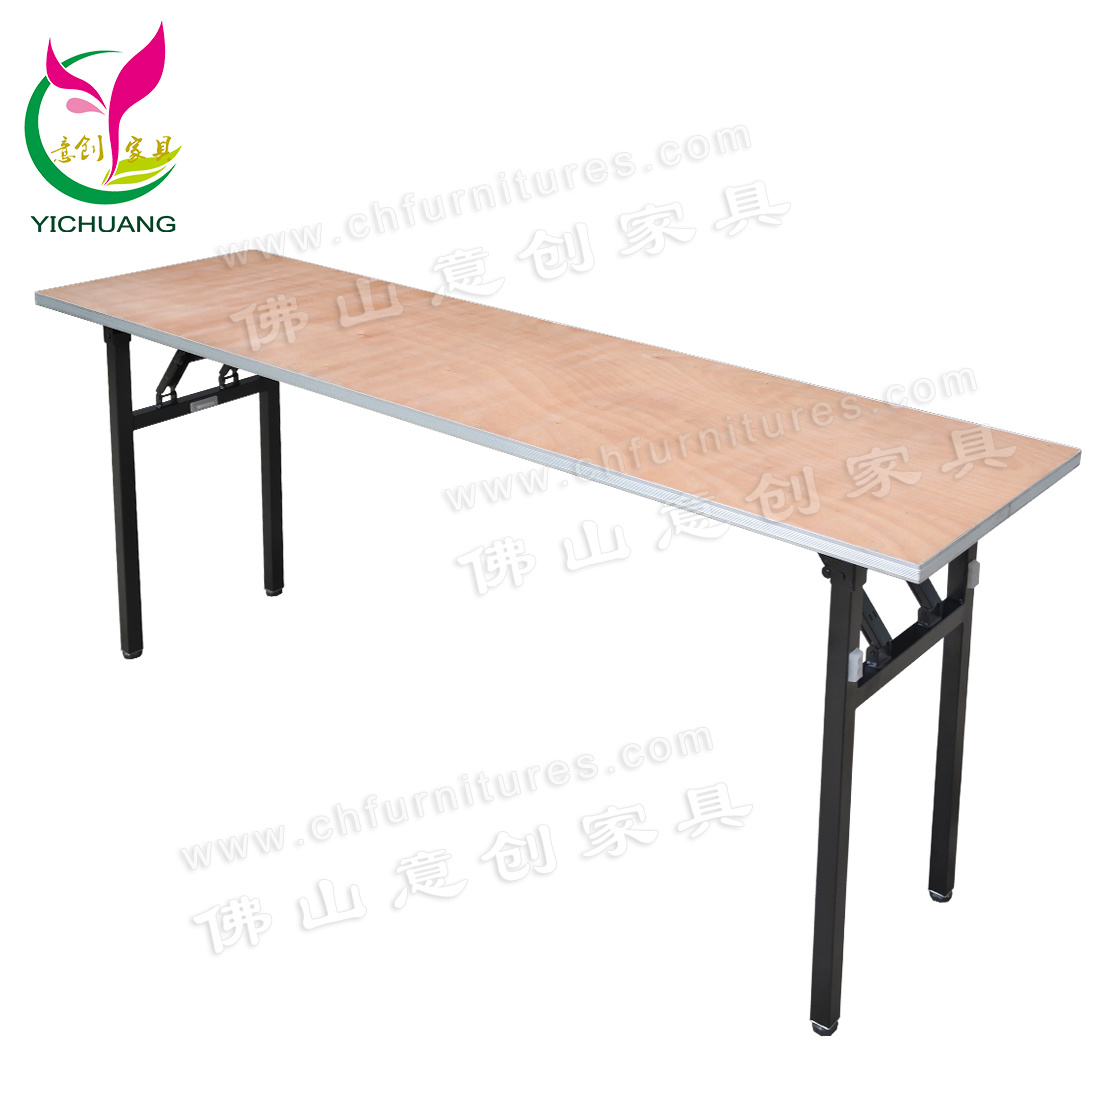 - China Yc-T38 Folding Lacquer Plywood Rectangular Banquet Table